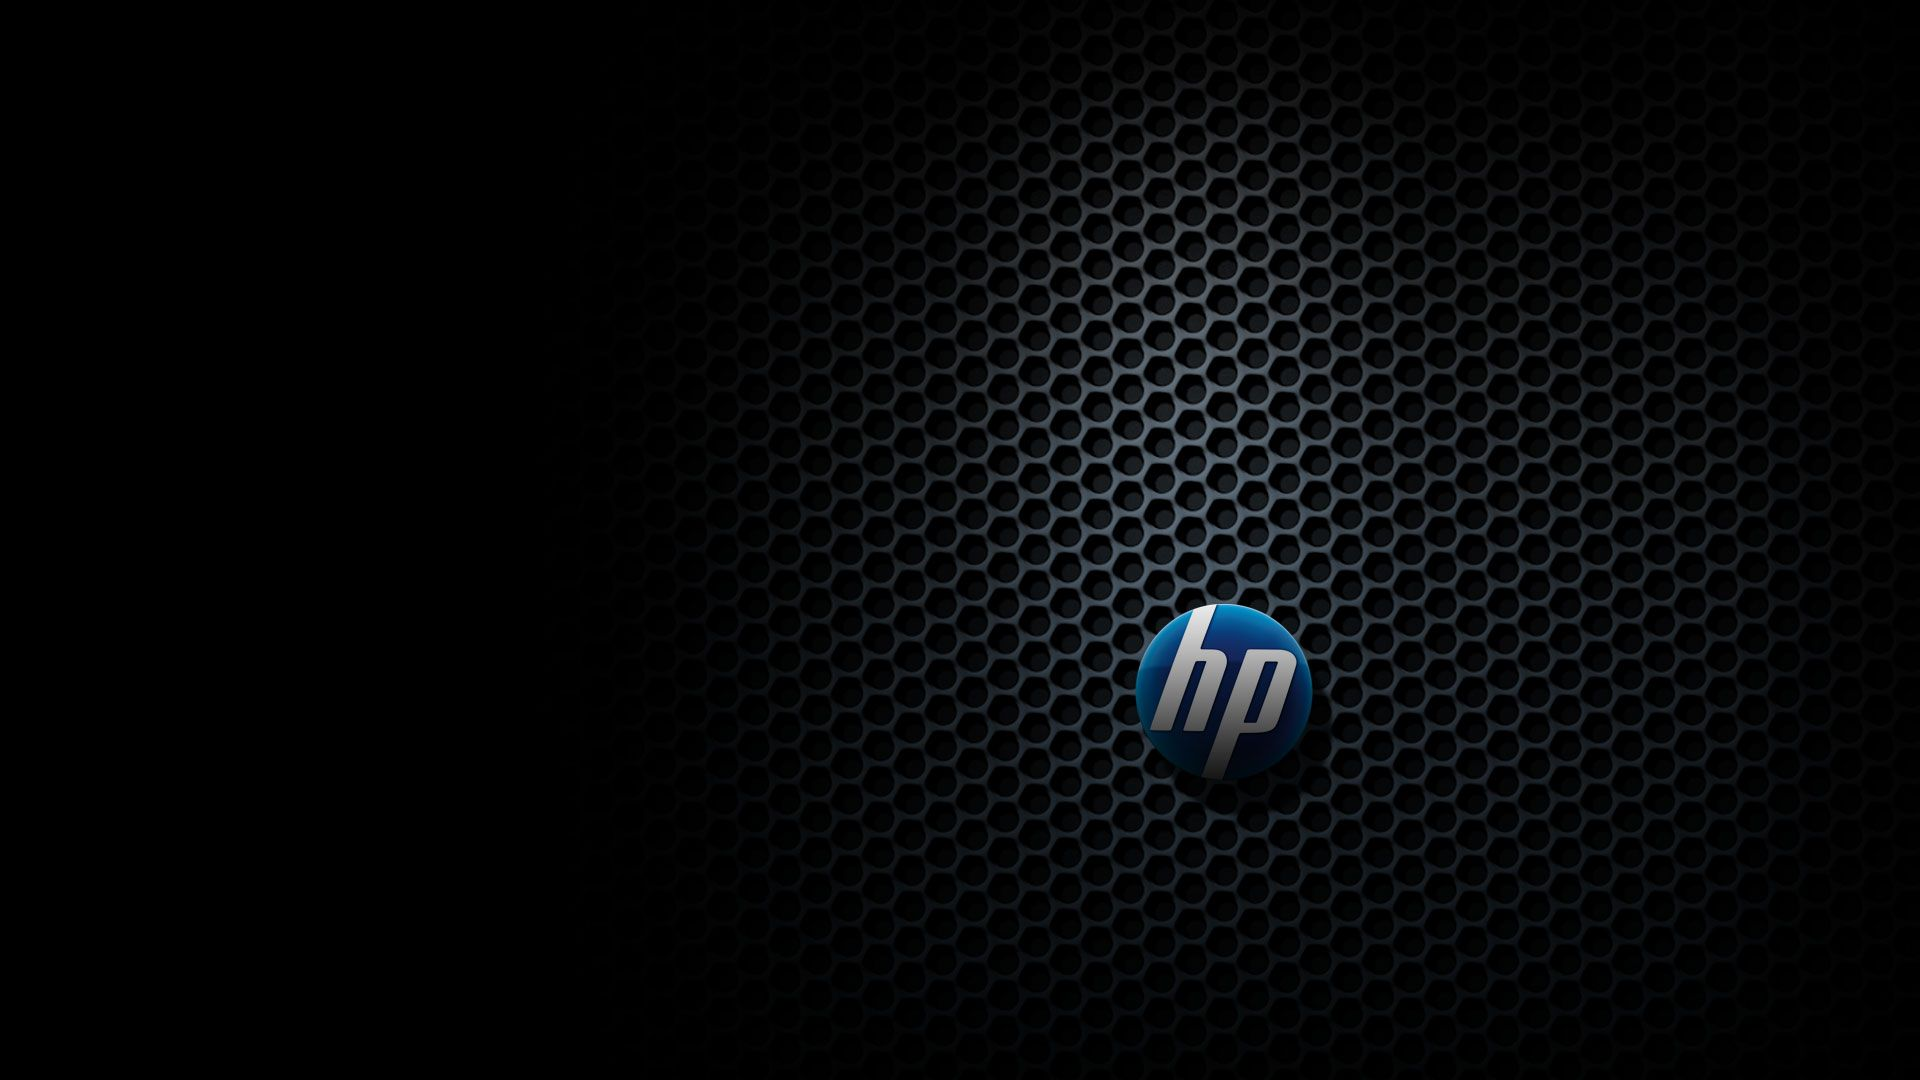 Hp Wallpapers Hd 1080p Wallpapersafari HD Wallpapers Download Free Images Wallpaper [1000image.com]